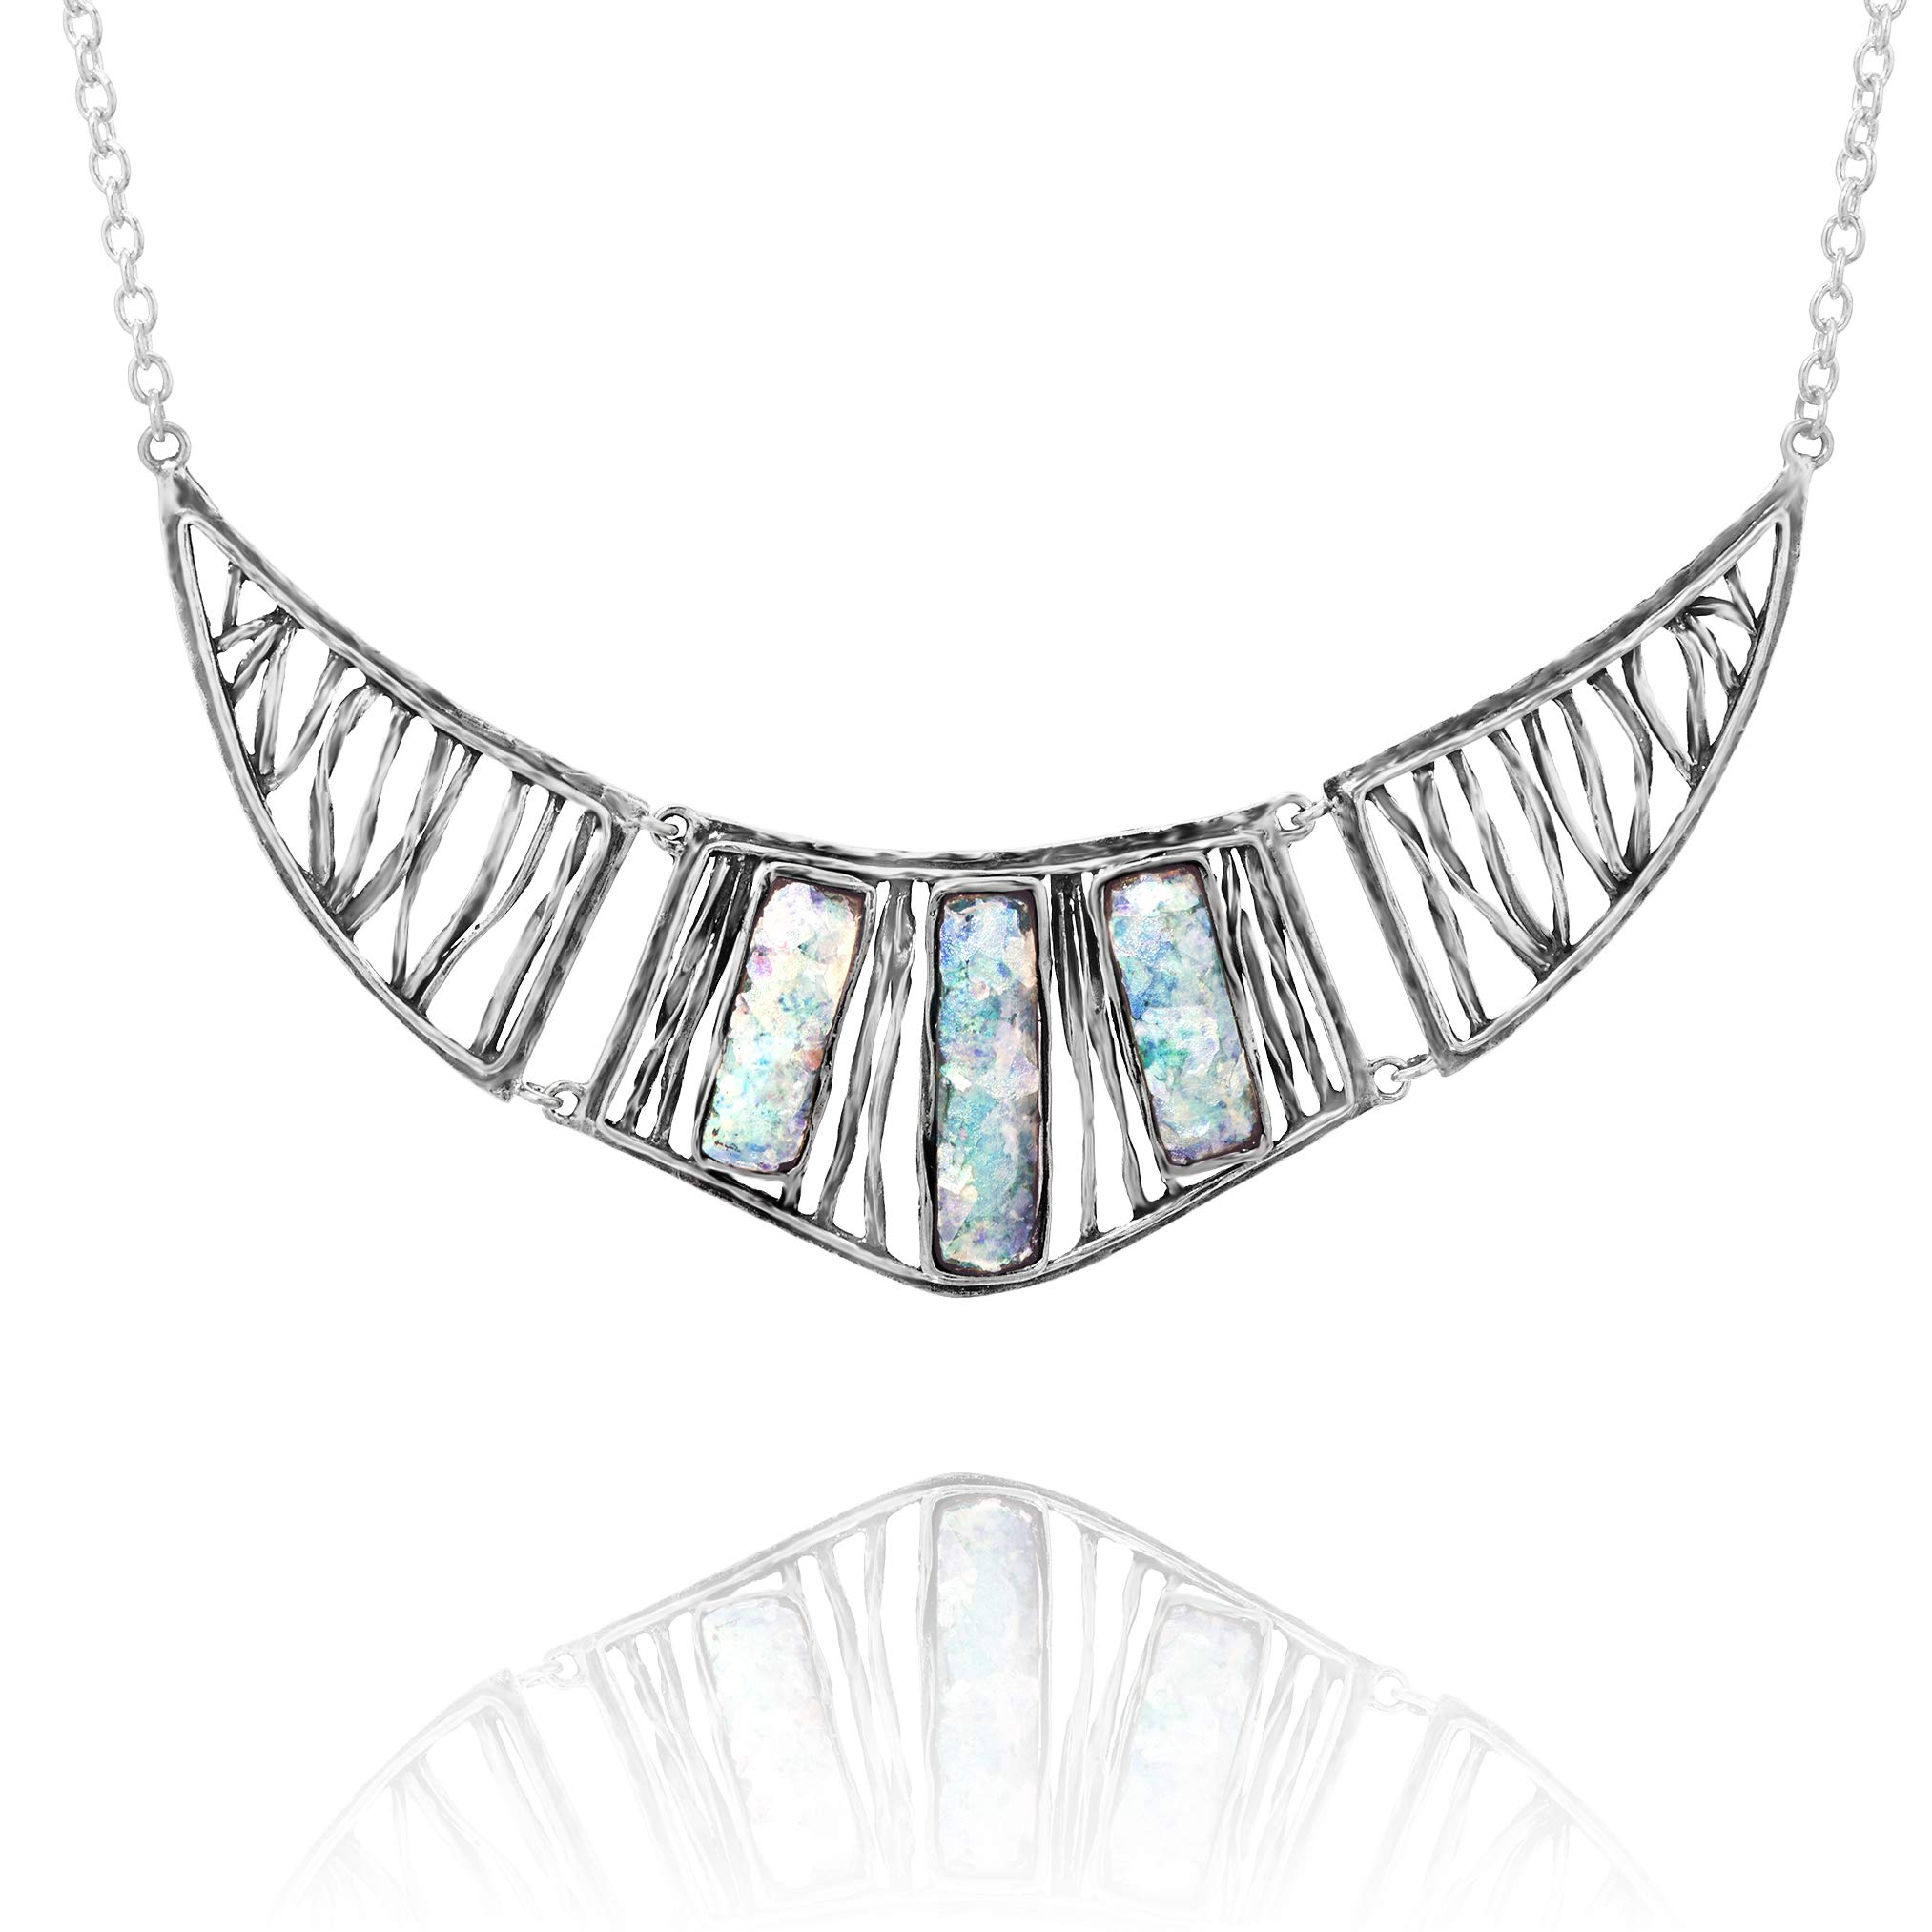 PAZ Creations 925. Sterling Silver Roman Glass Statement Necklace by PZ